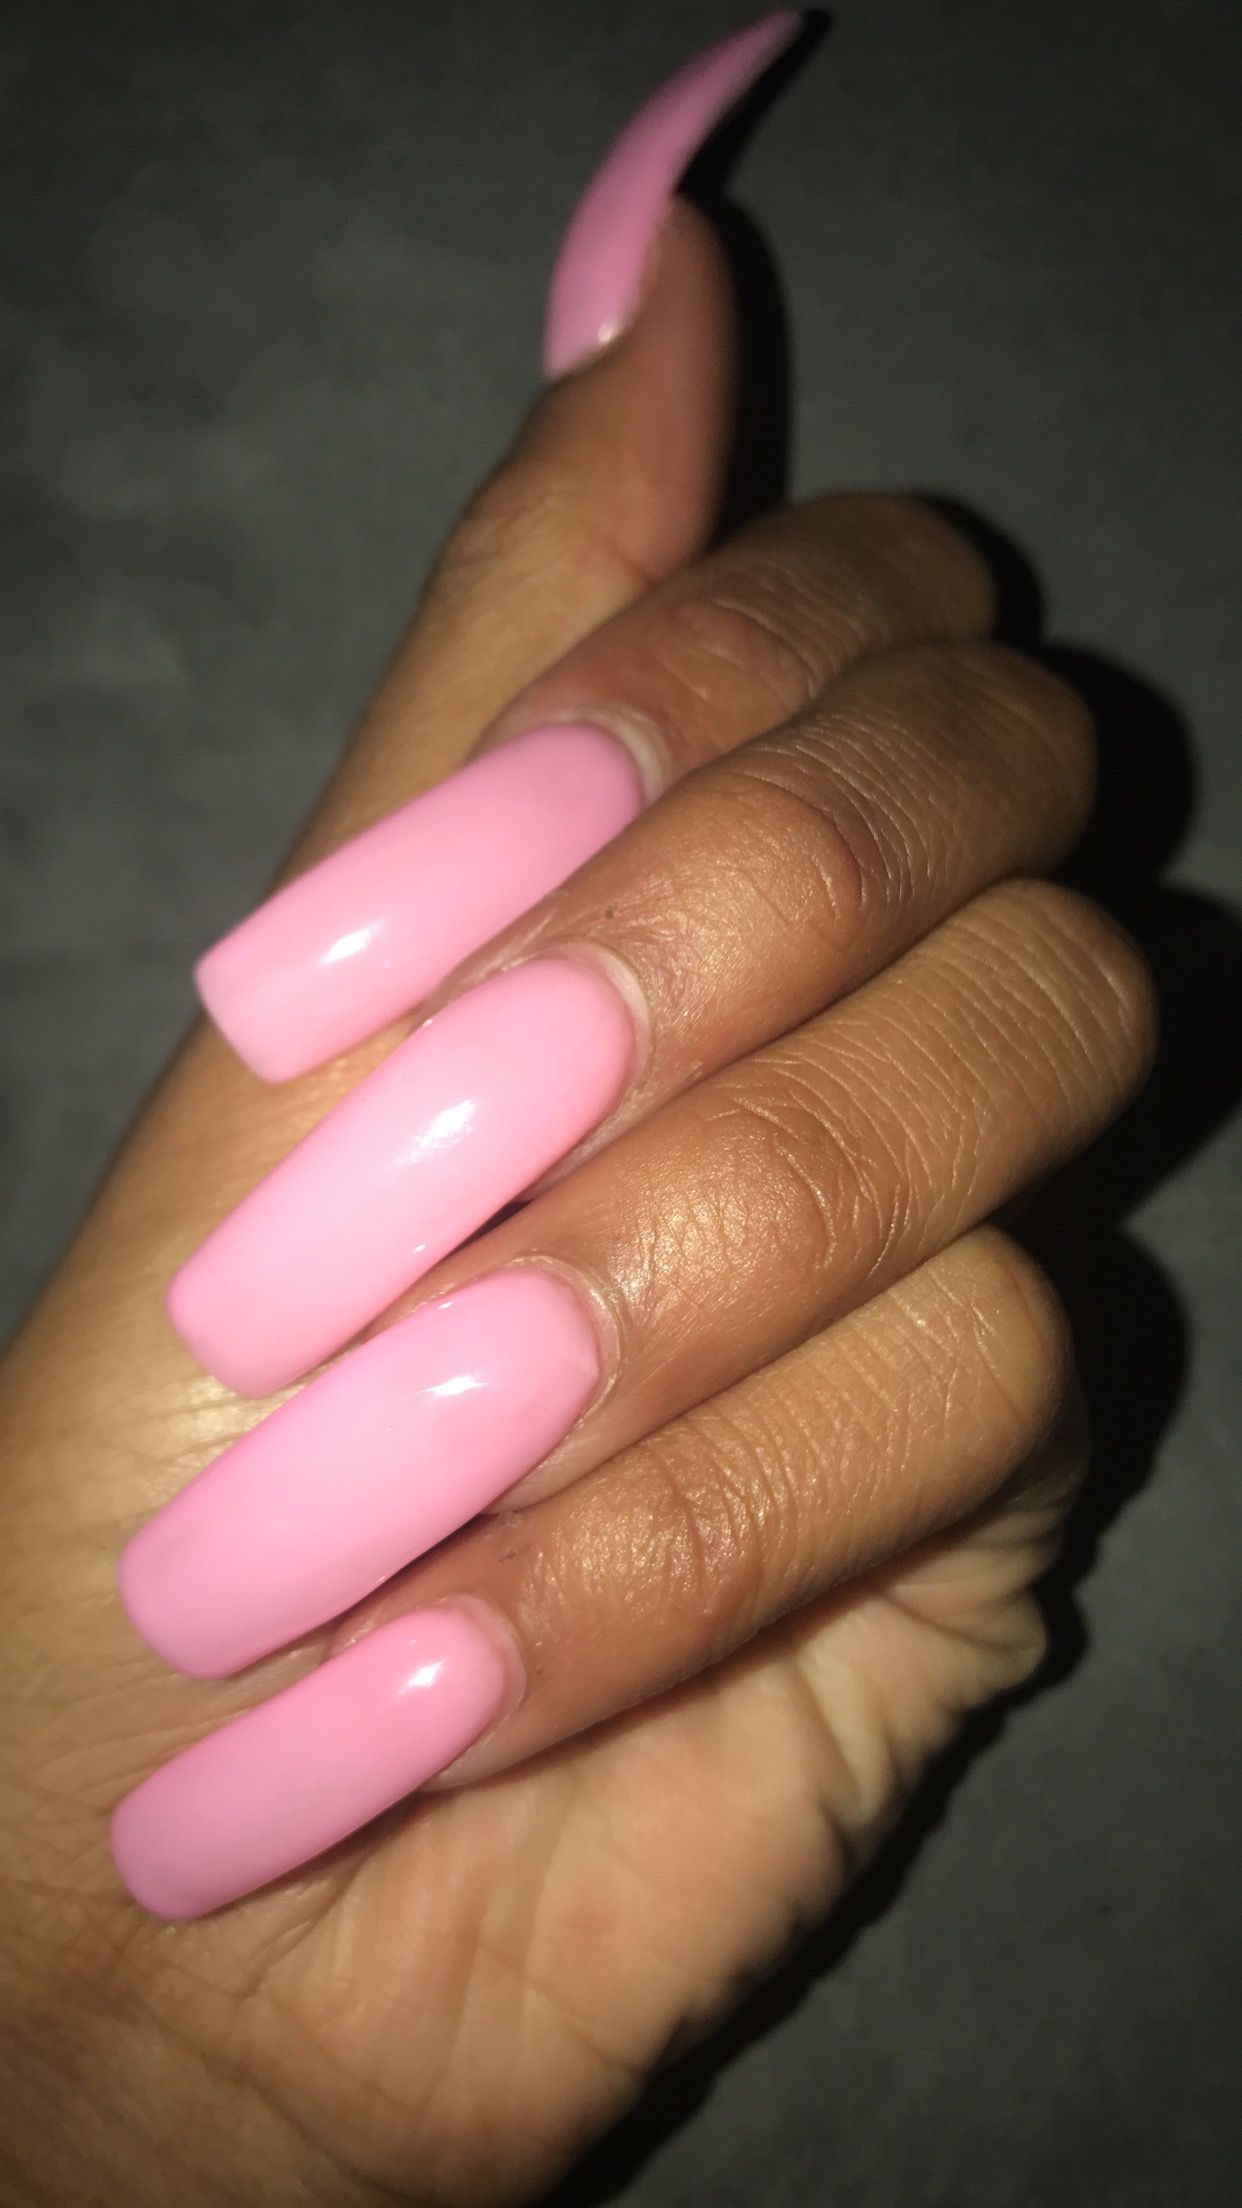 Pin By Asg5353 On N A I L S Long Acrylic Nails Nails Only Nails